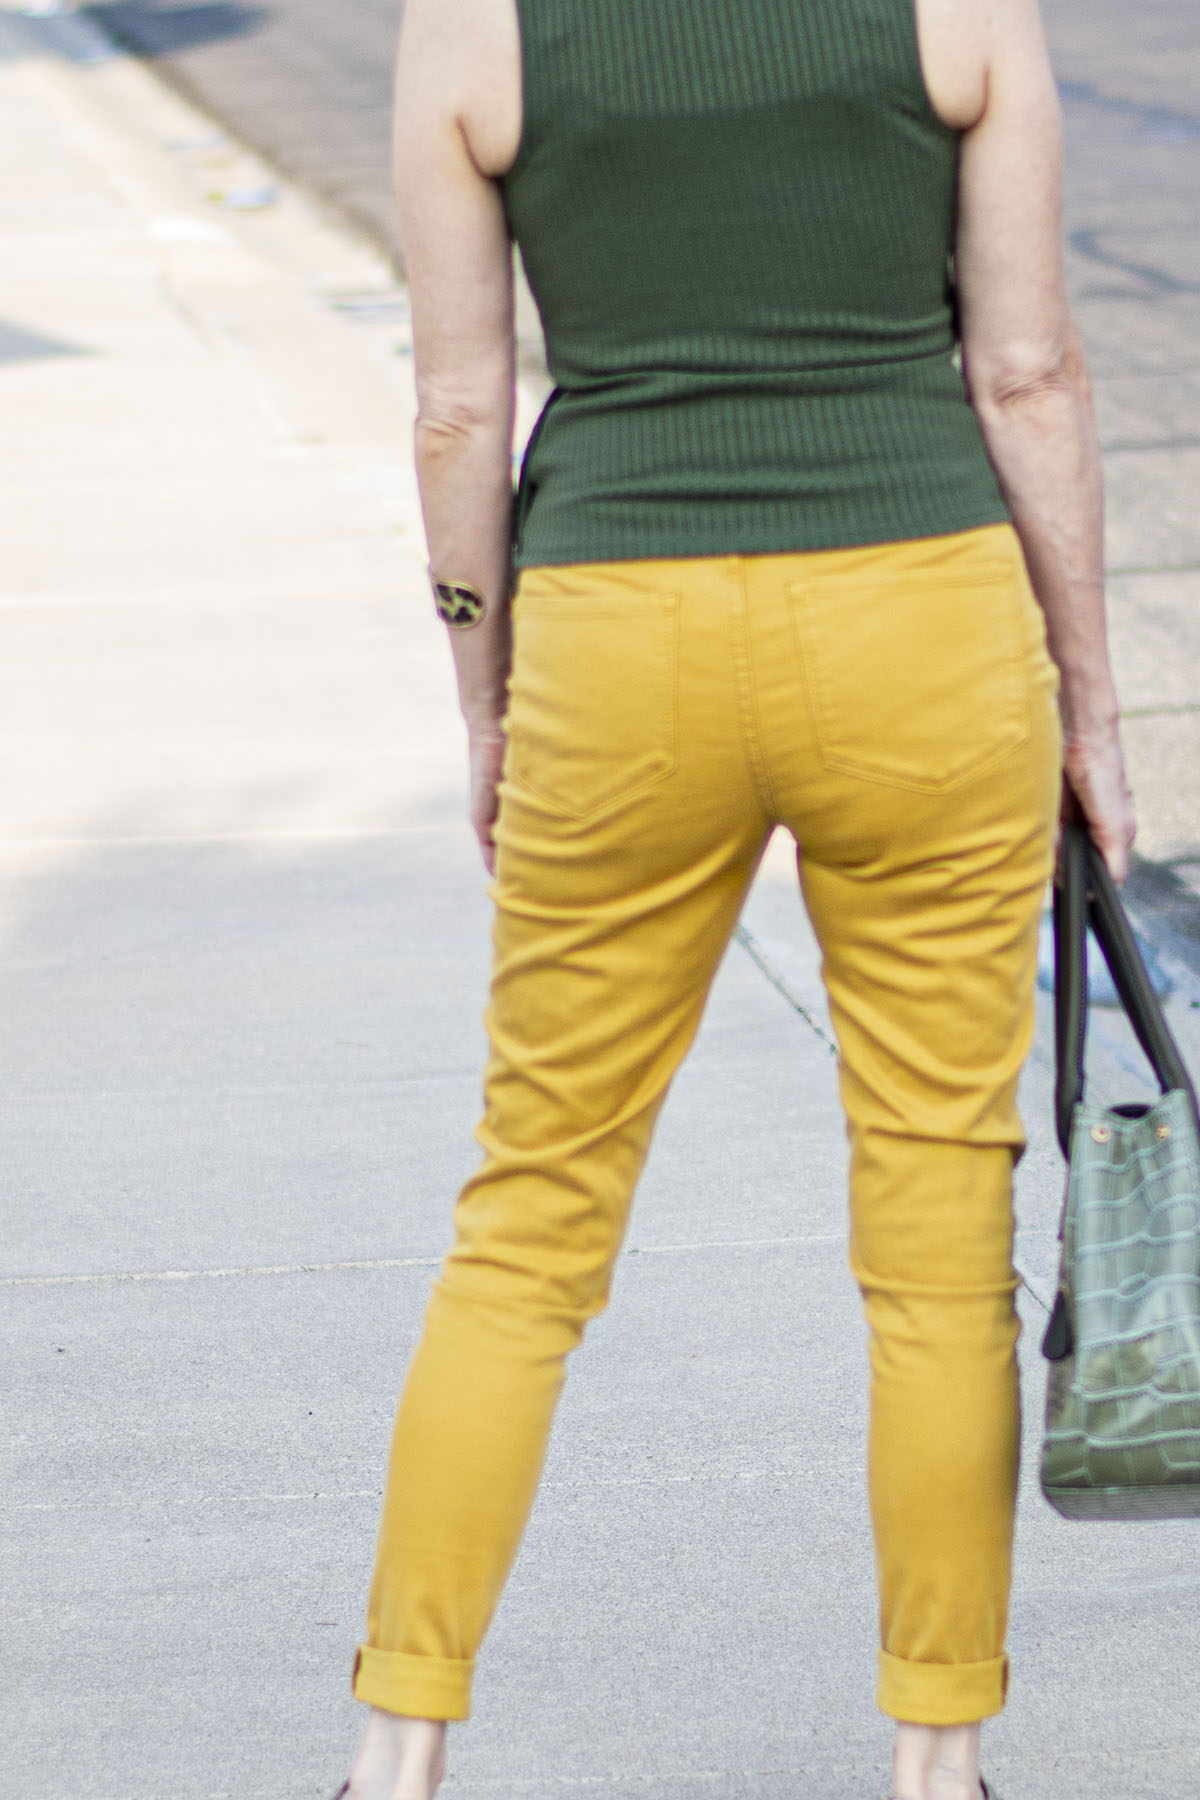 5 Colorful Ways to Wear Mustard Yellow Jeans